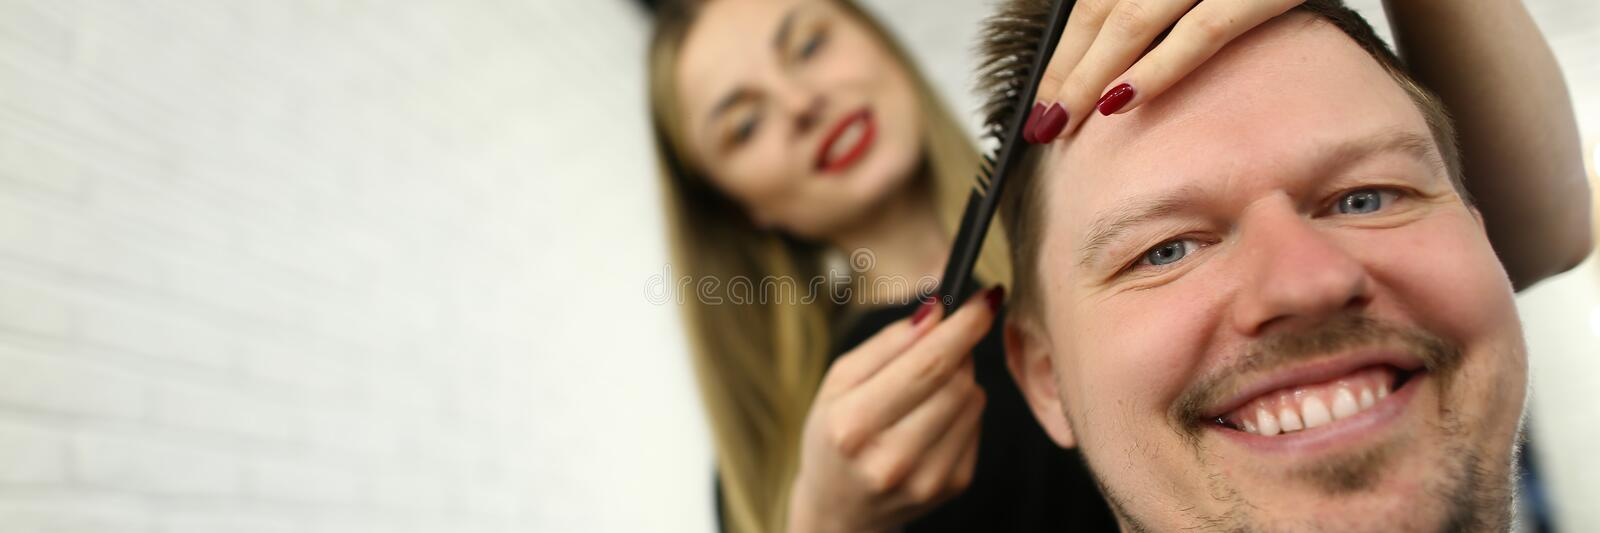 Hairdresser Combing Male Hair in Beauty Salon royalty free stock photo